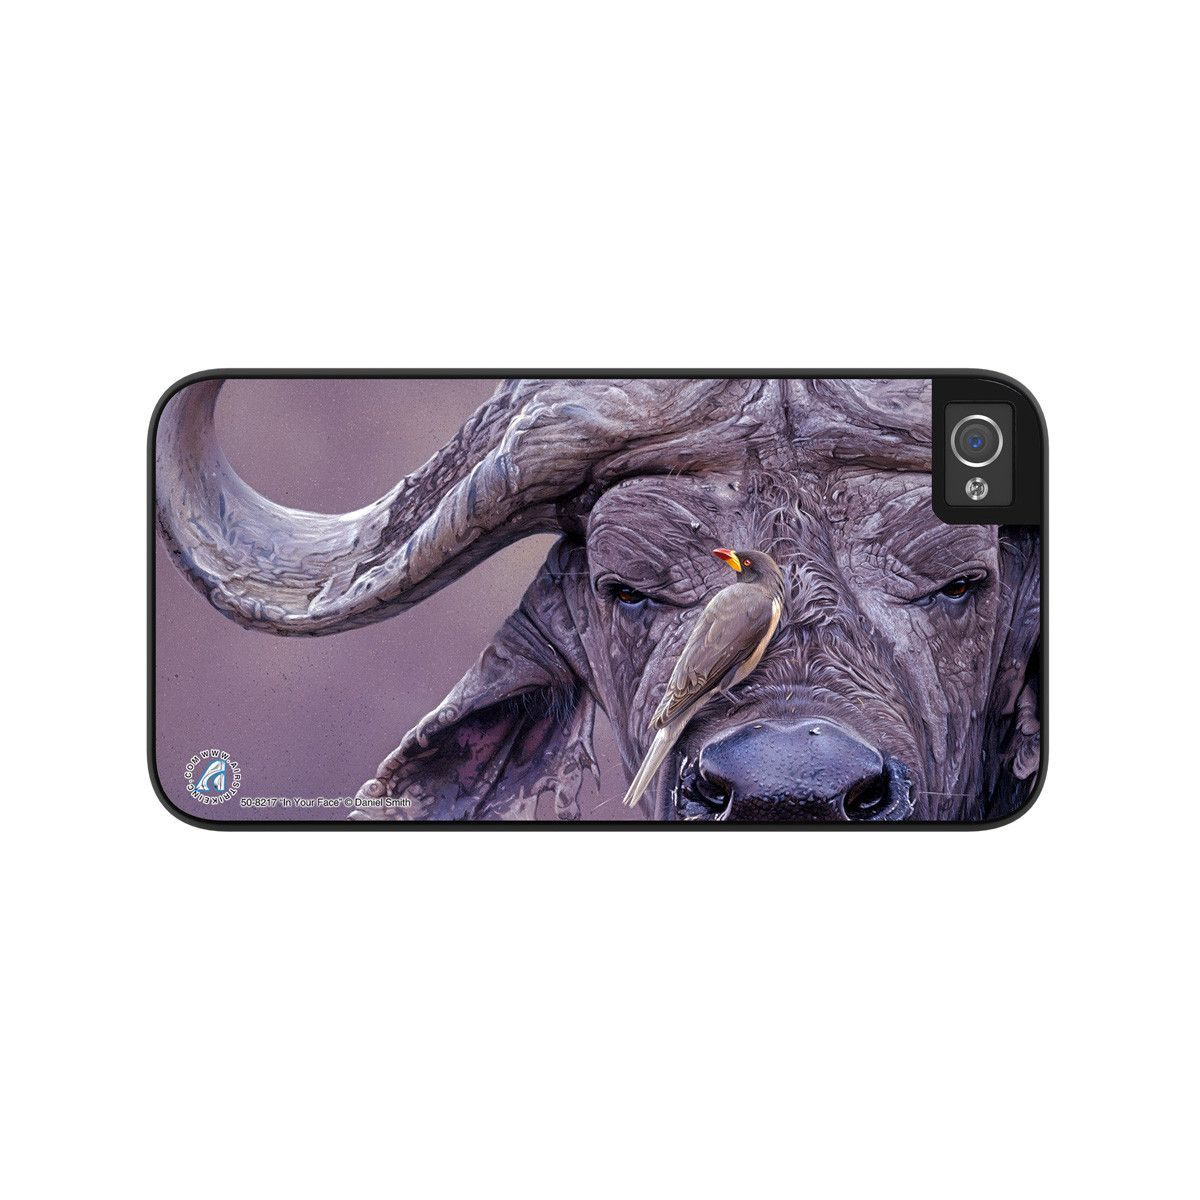 Airstrike Water Buffalo Iphone 5 Case 5s Protective Phone In Your Face 50 8217